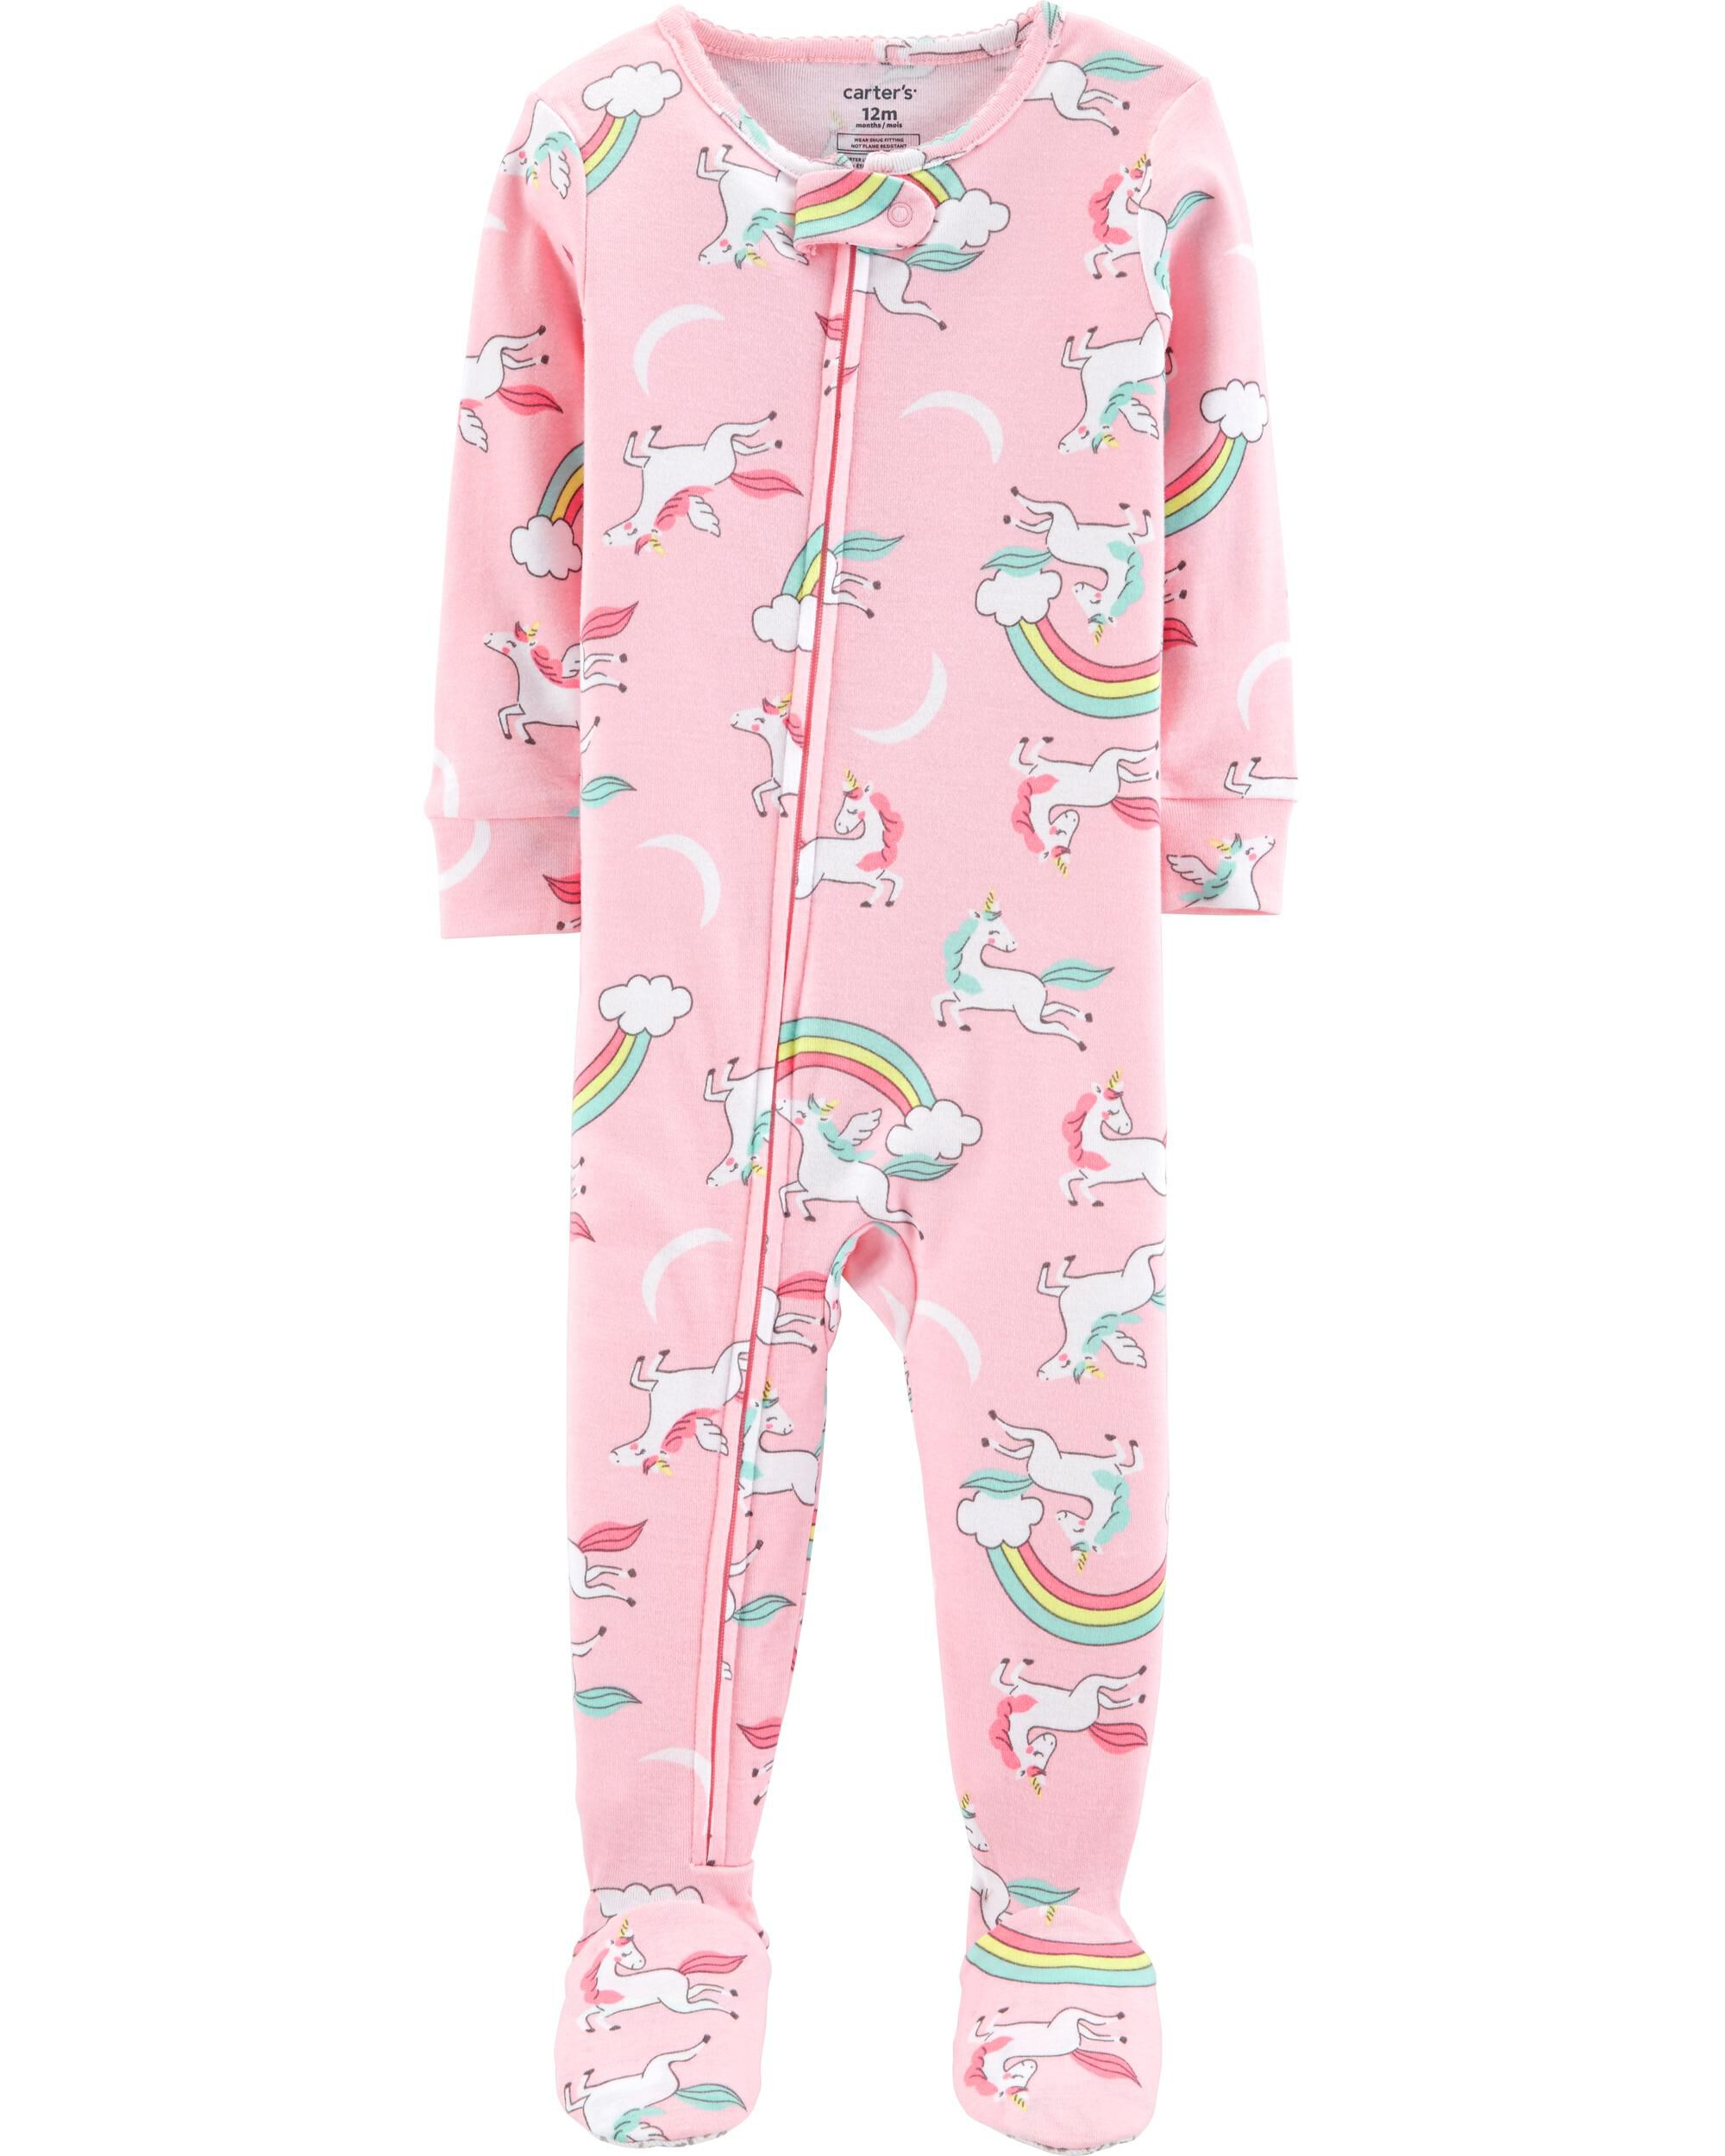 Provided Carters Baby Girl 12m Sleep & Play Ballerina Footed Zip Pajamas New Attractive Designs; Girls' Clothing (newborn-5t) Clothing, Shoes & Accessories